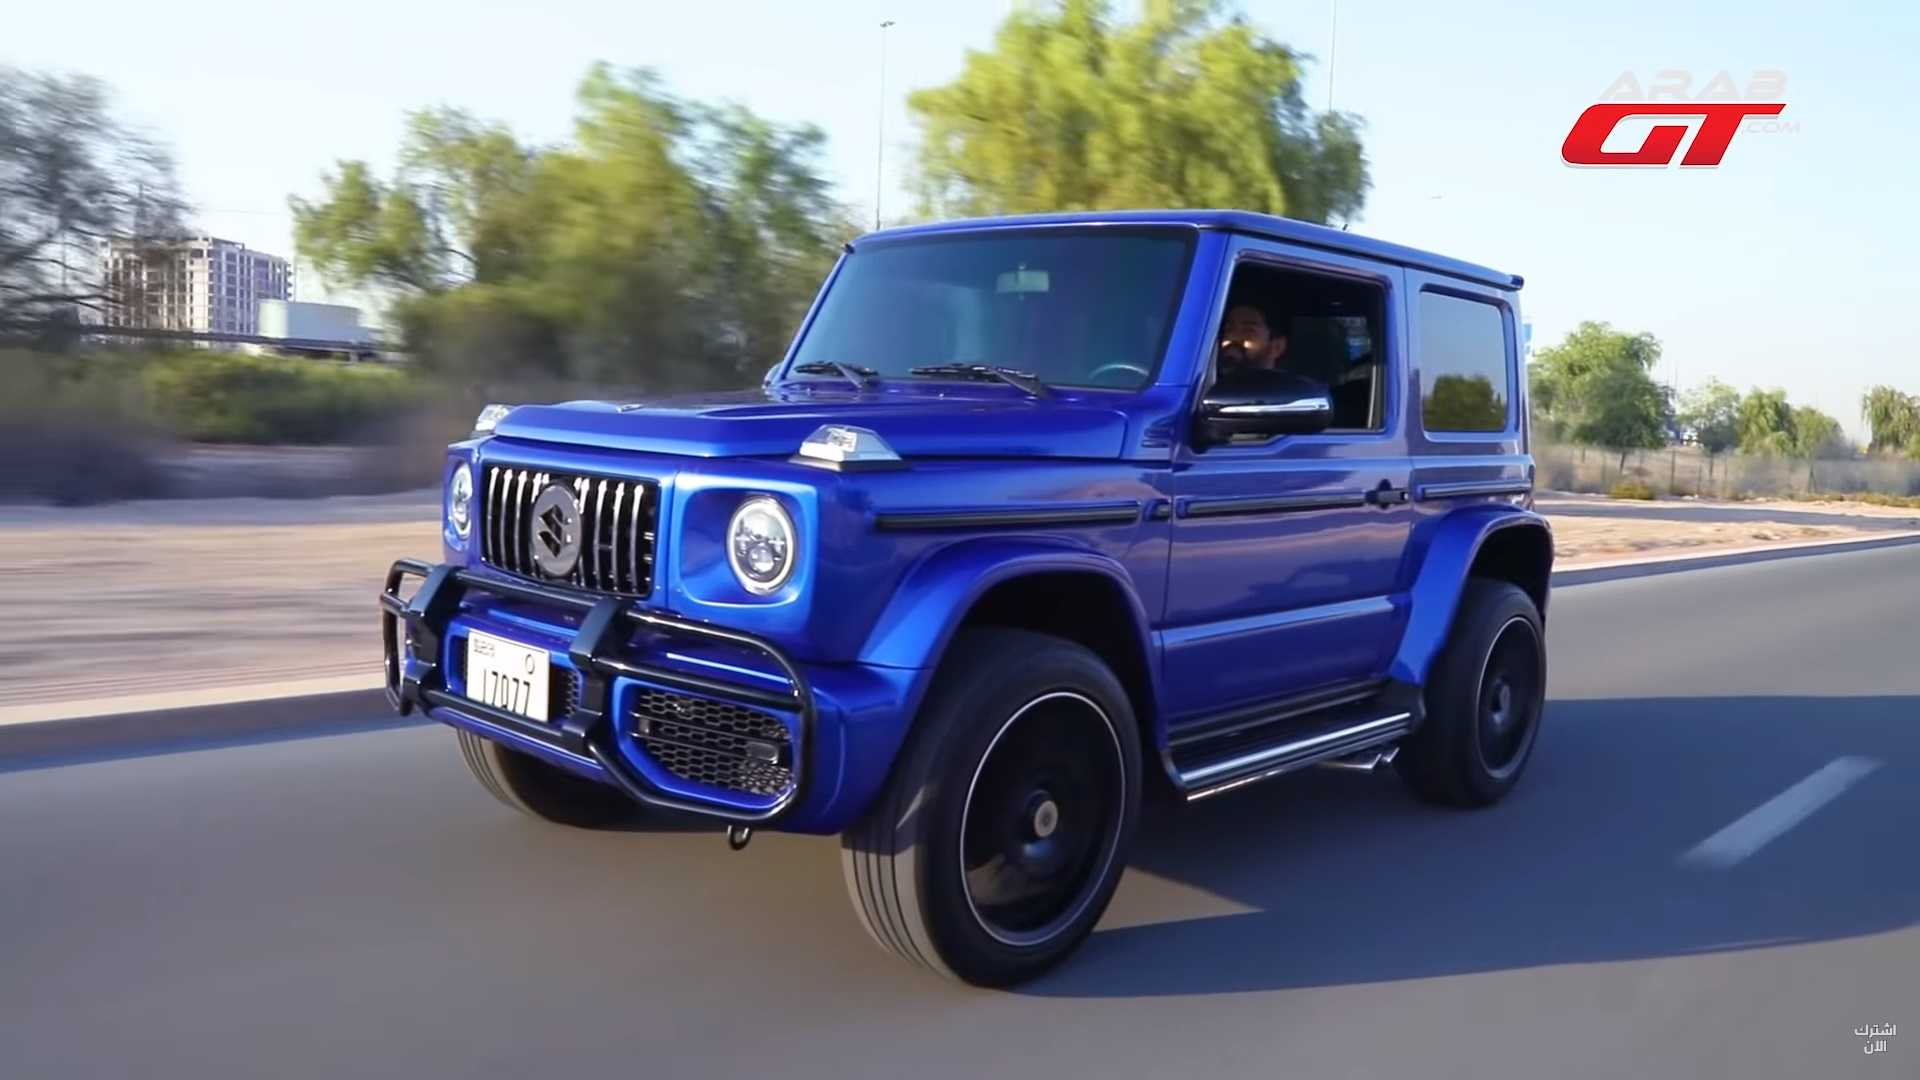 suzuki-jimny-with-mercedes-amg-g63-body-kit-by-fast-car-service-centre